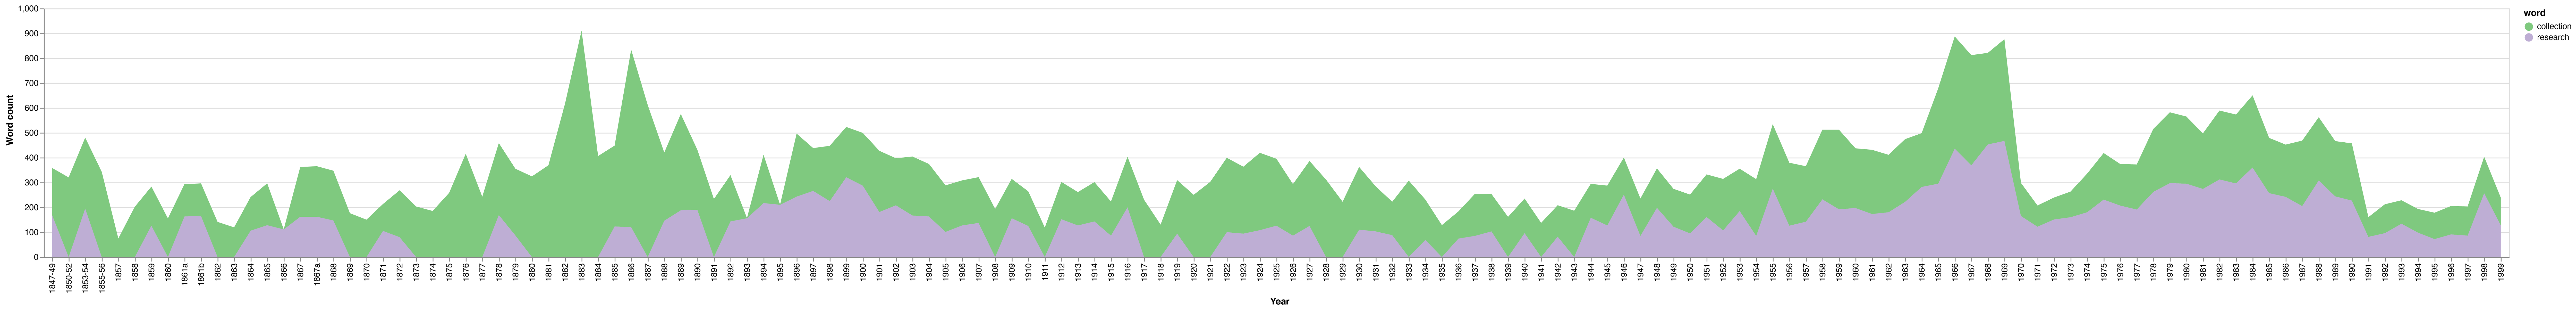 Plot of count of the words research and collection over time